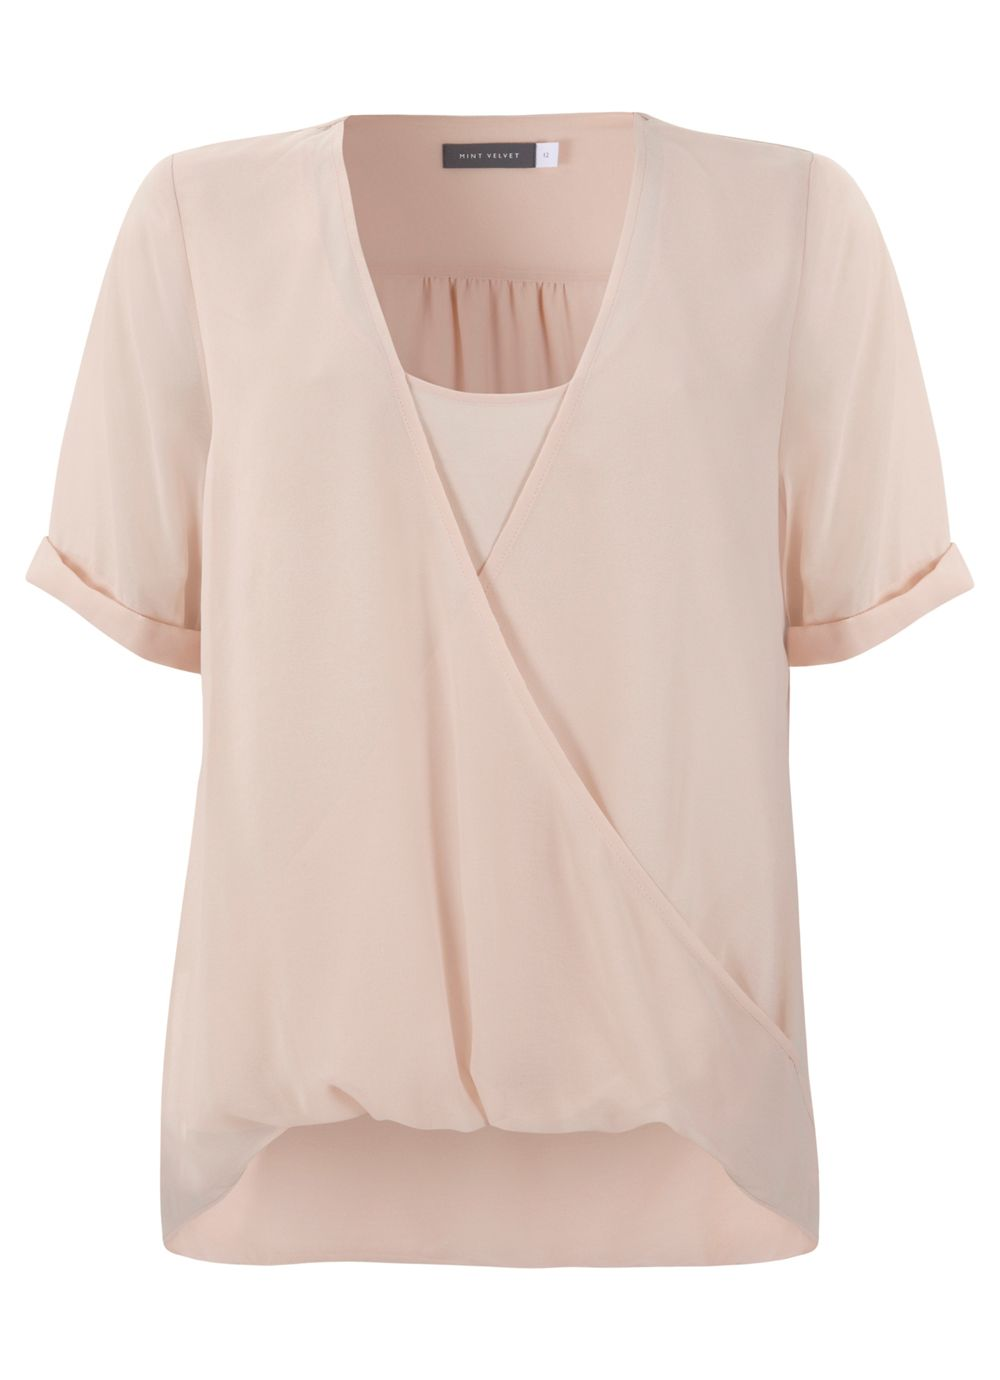 Peach wrap top